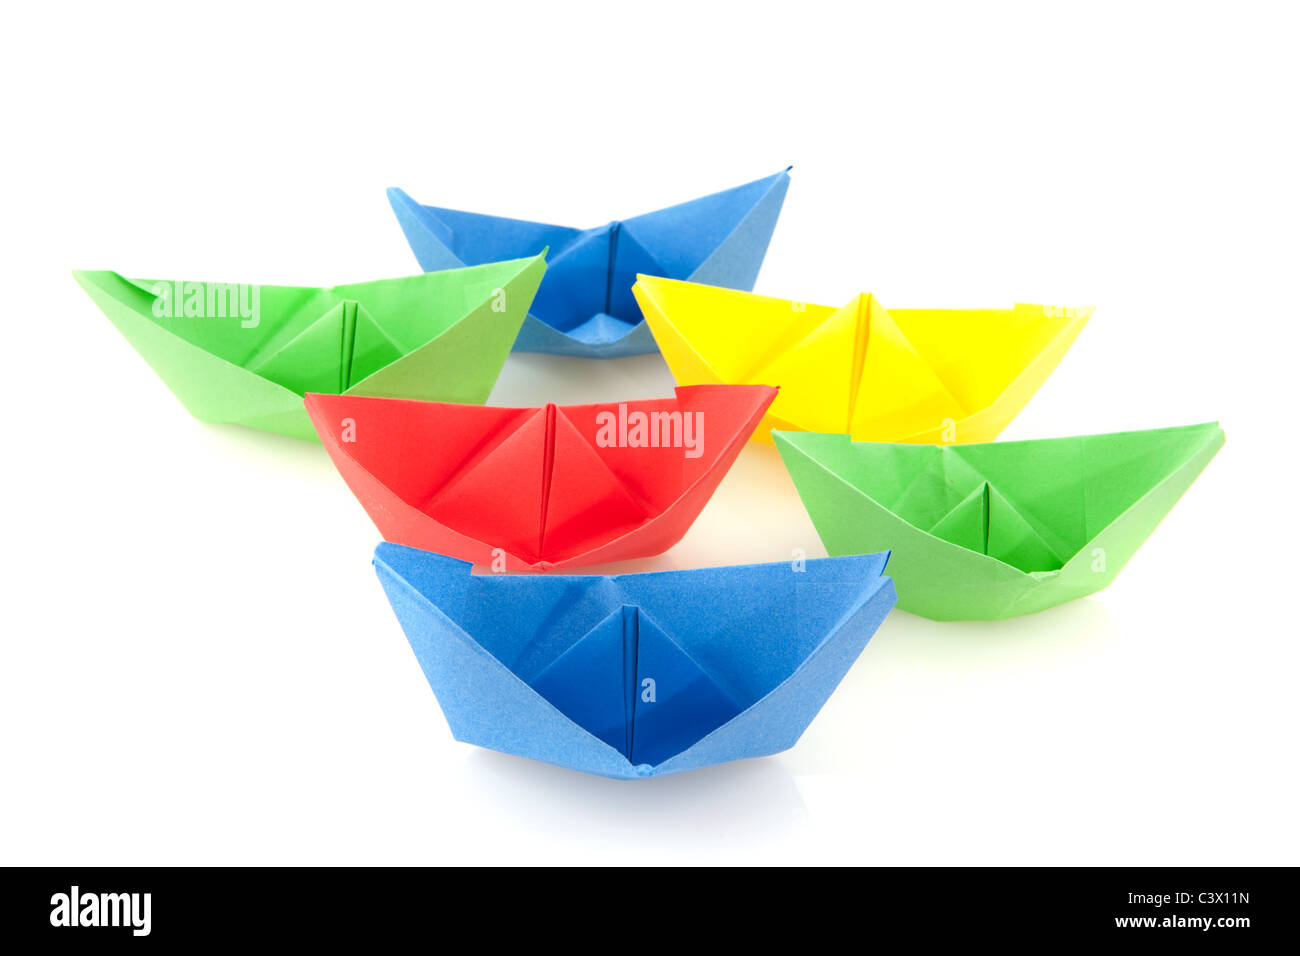 Many Colorful Folded Paper Boats On White Background Stock Photo